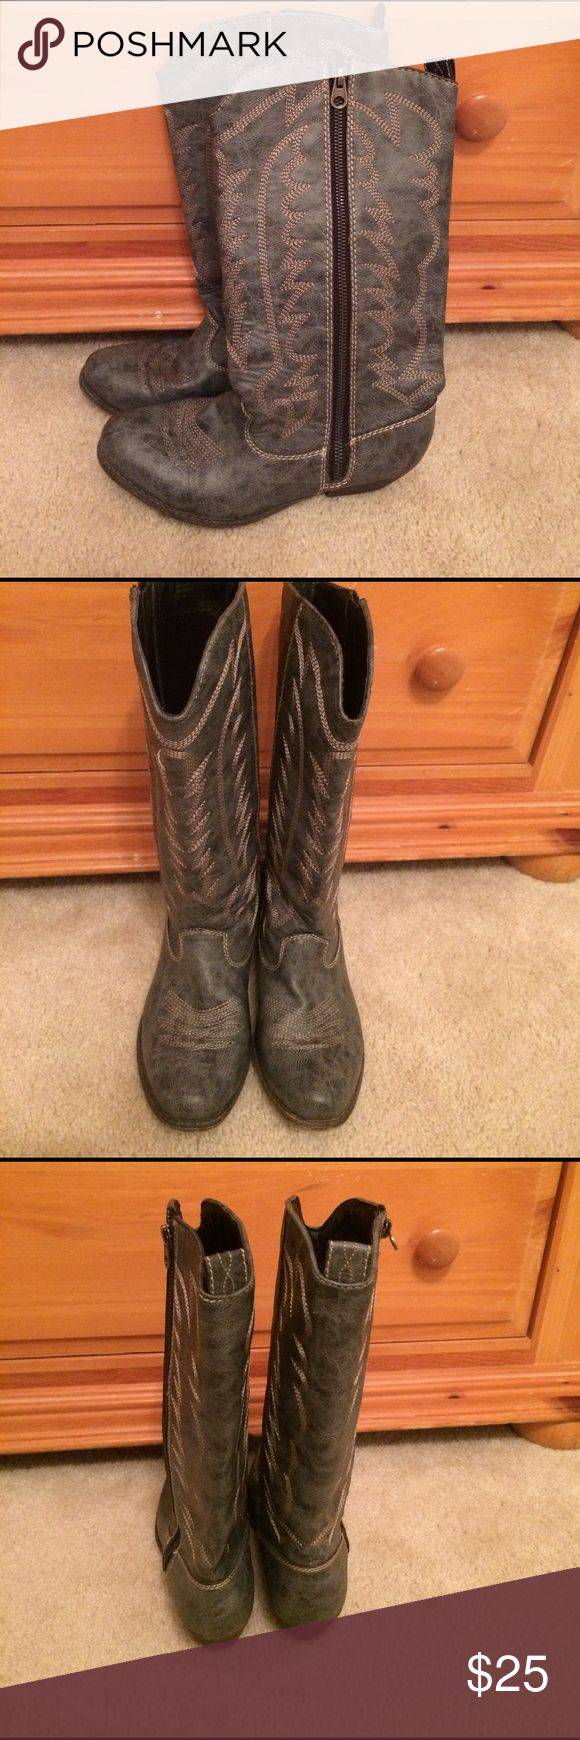 Big Buddha western style boots 7.5 Big Buddha western style boots 7.5. In good condition. A bluish gray in color. Only wore a few times. Comes from smoke free and pet free home. Big Buddha Shoes Heeled Boots